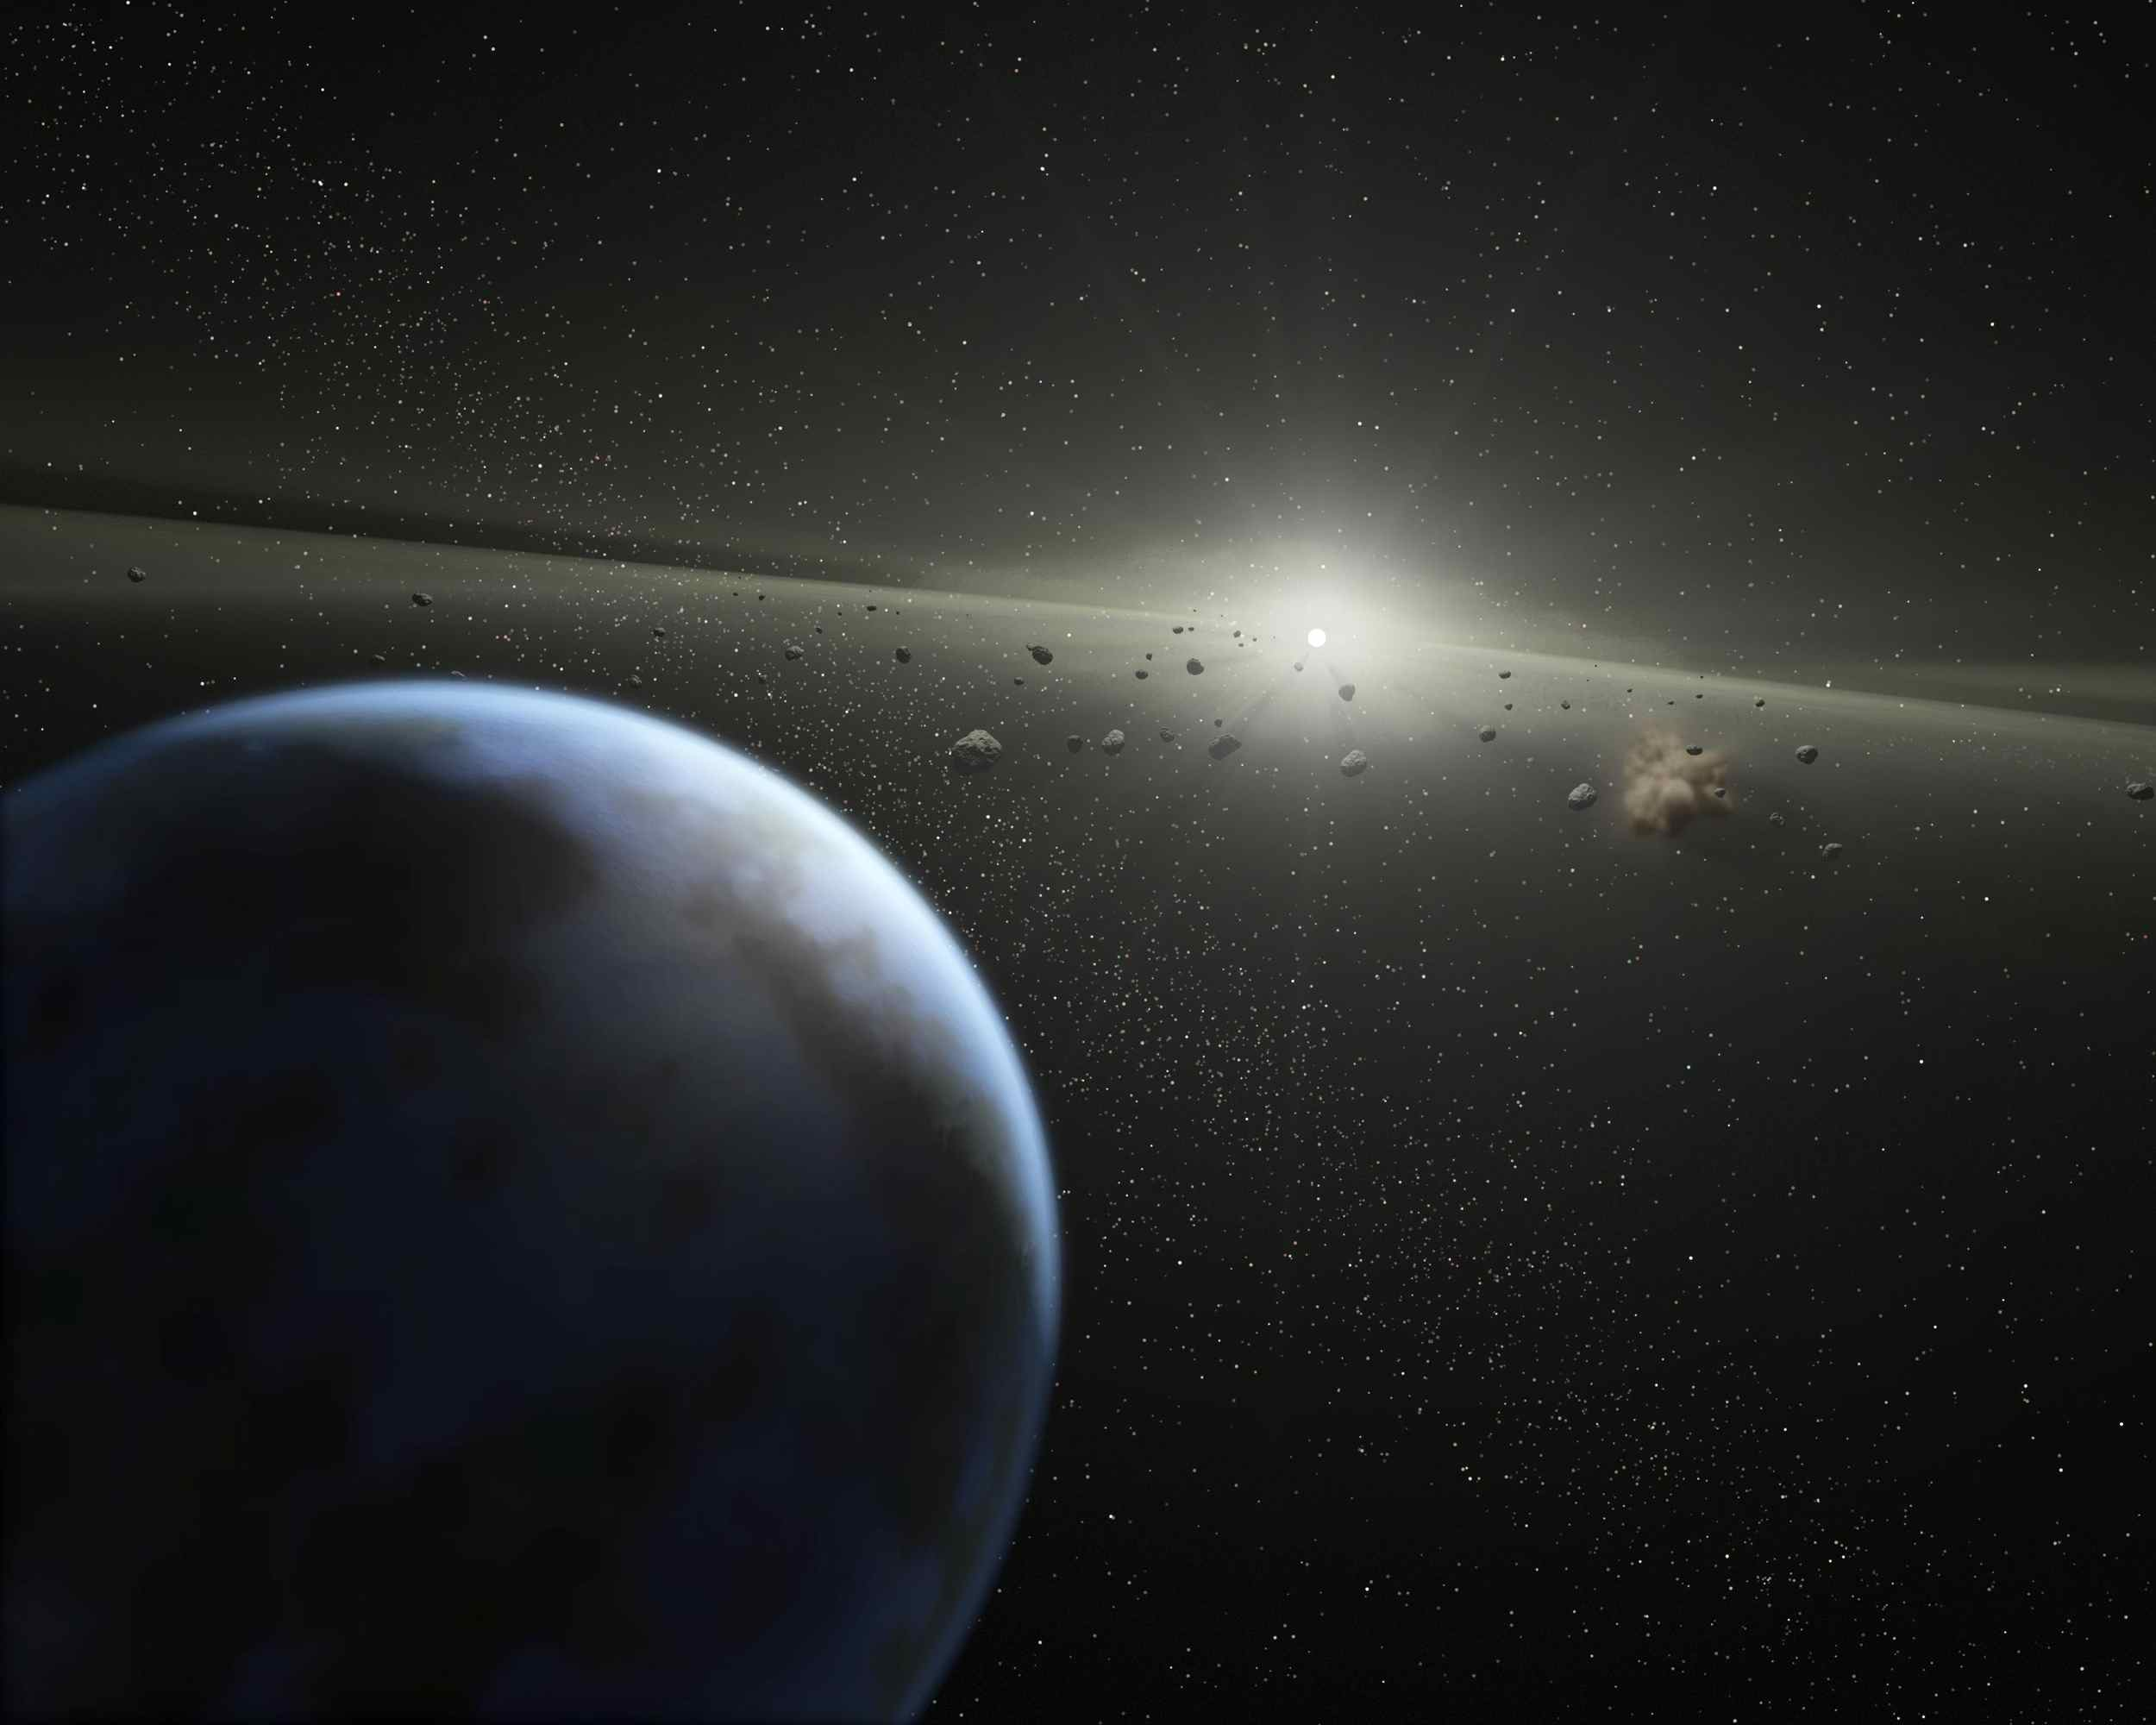 Evidence for this possible belt was discovered by NASA's Spitzer Space Telescope when it spotted warm dust around the star, presumably from asteroids smashing together. This is an artist's concept.